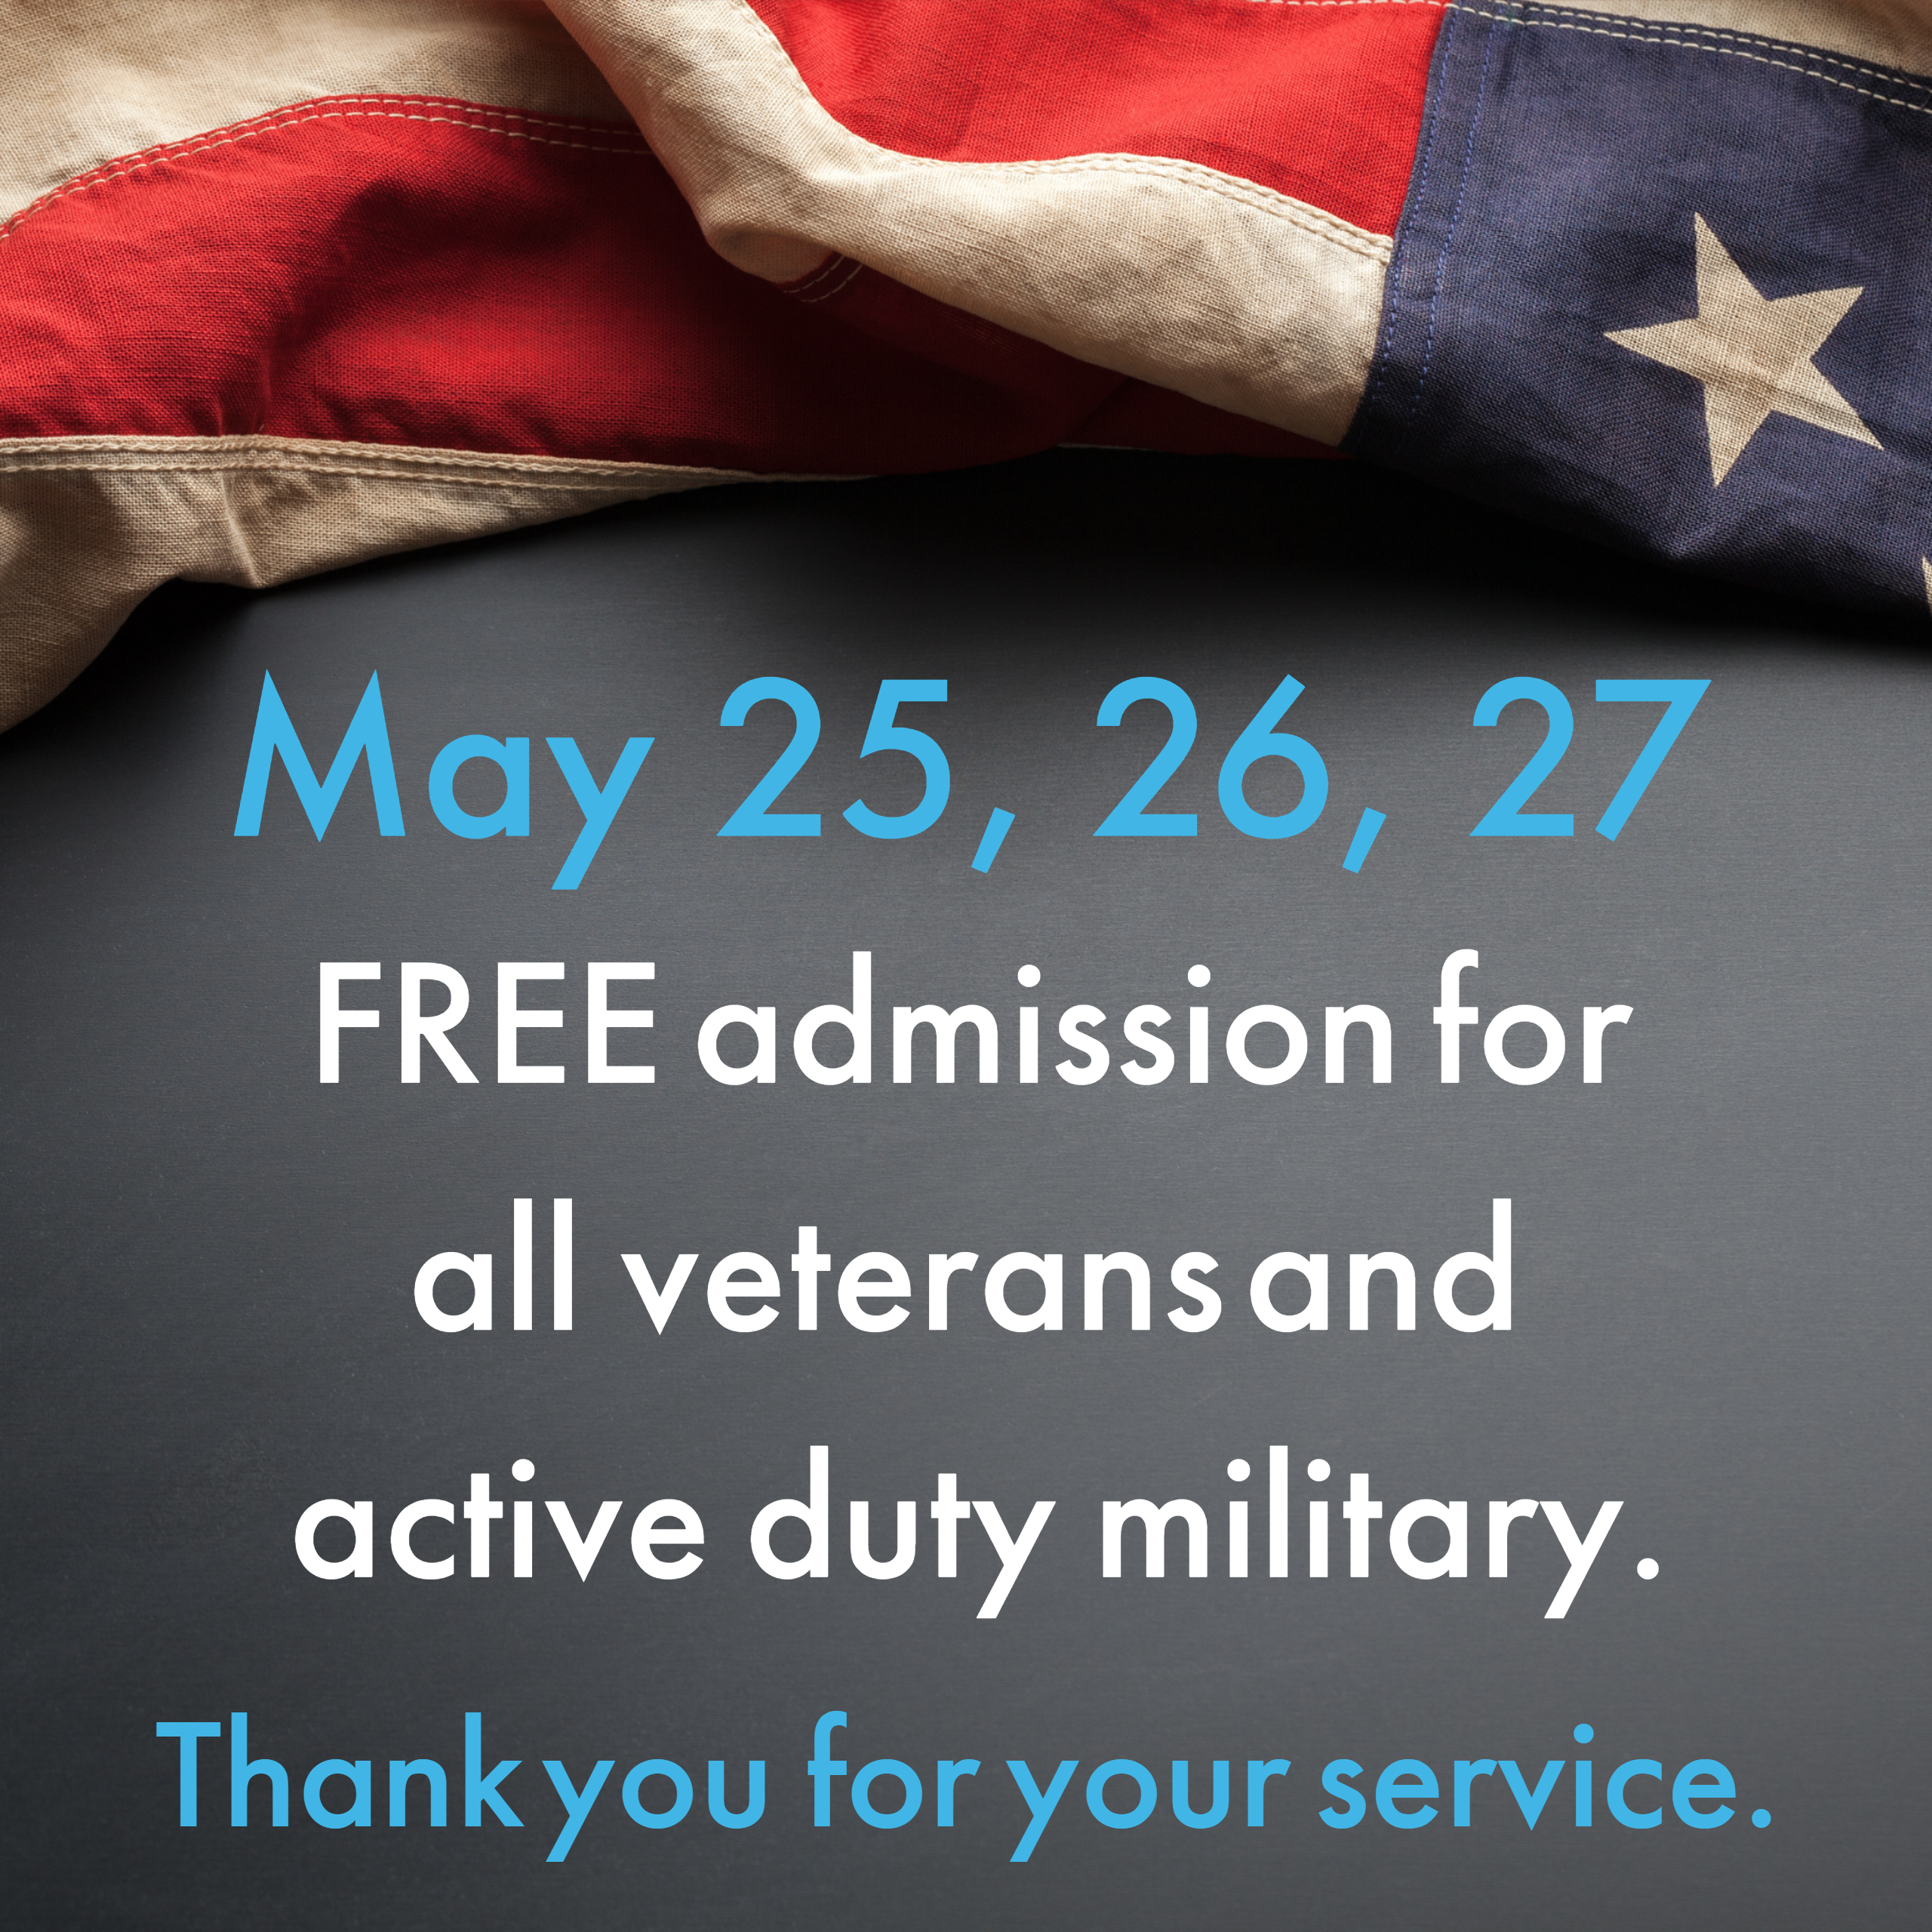 Banner advertising free admission for veterans and active military Memorial Day weekend